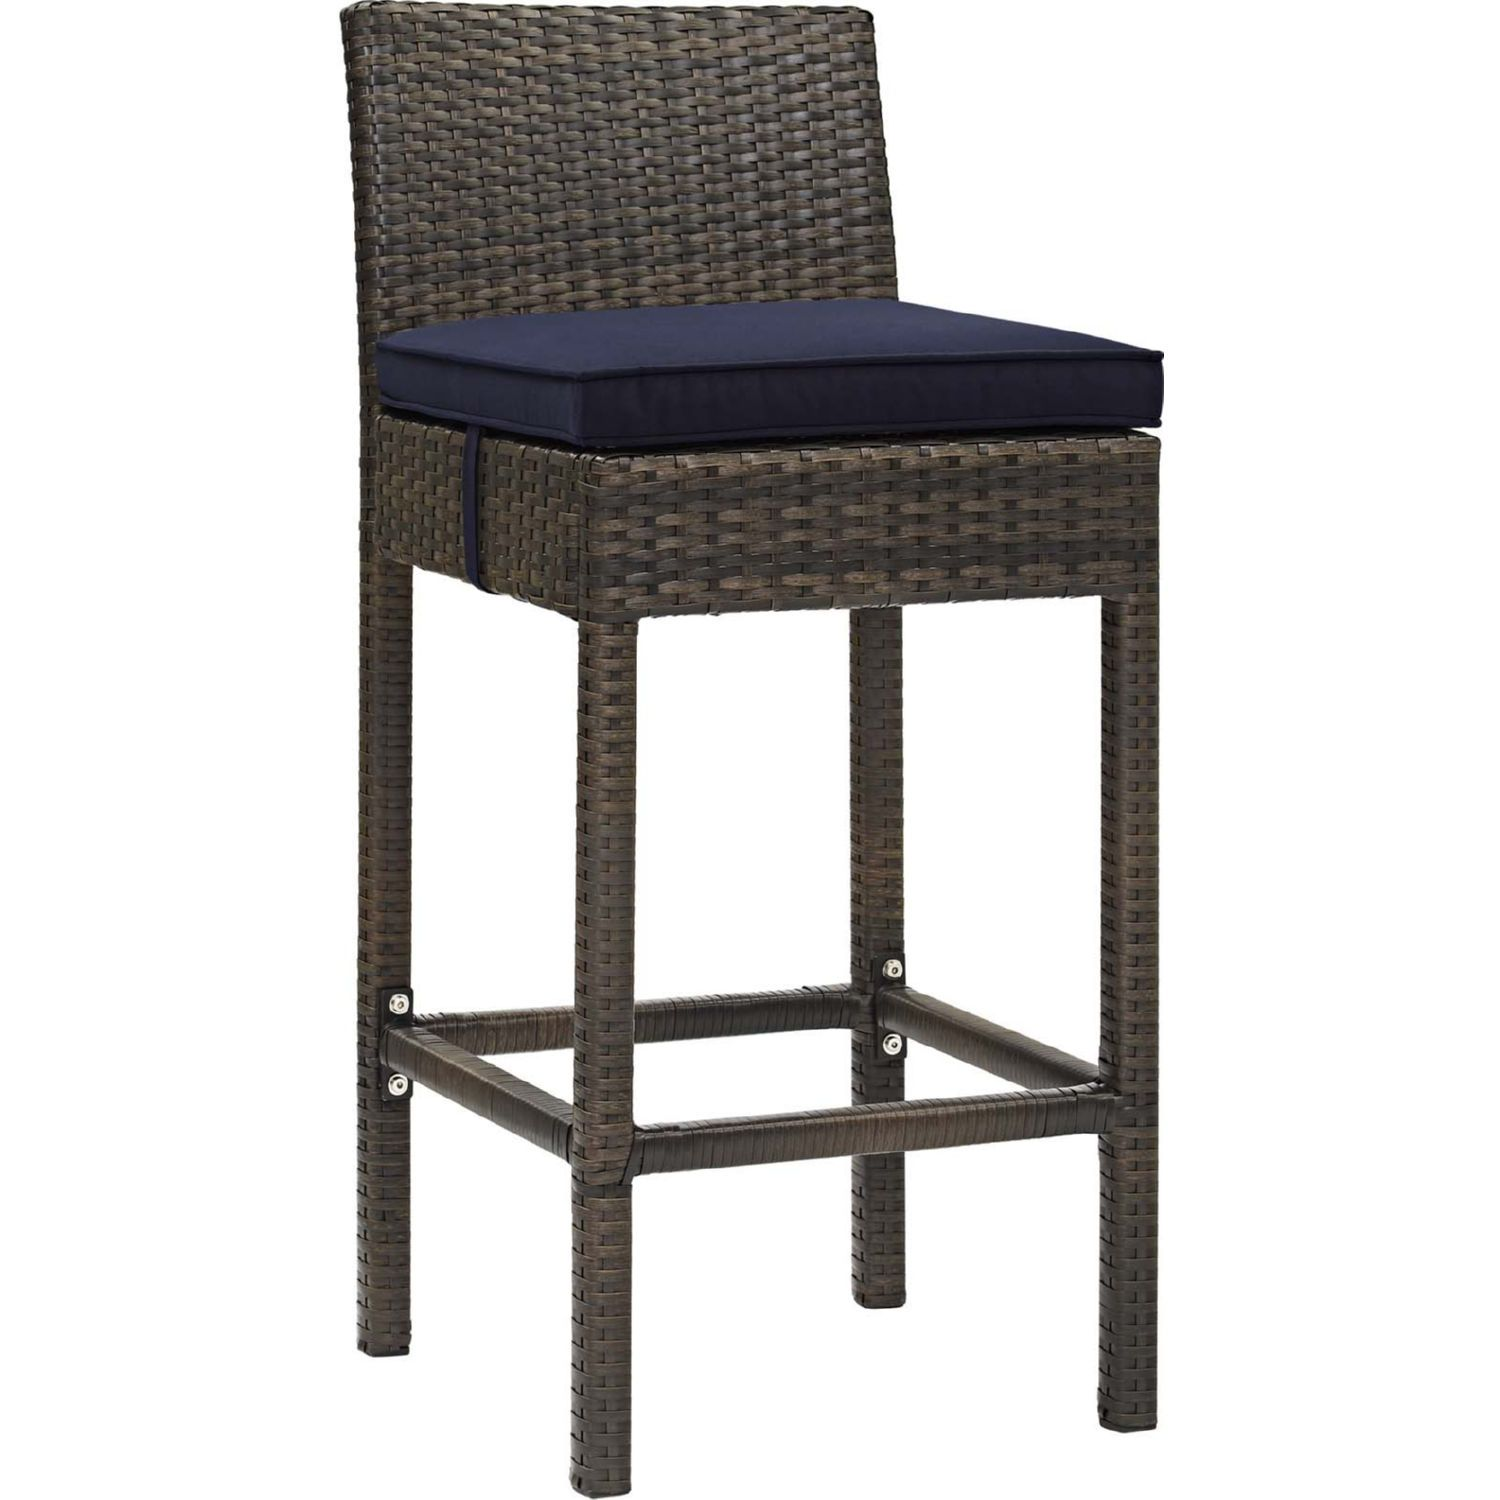 Navy Blue Bar Stools New Decorating White Bar Stools Blue Bar Stools Modern Bar Stools Kitchen